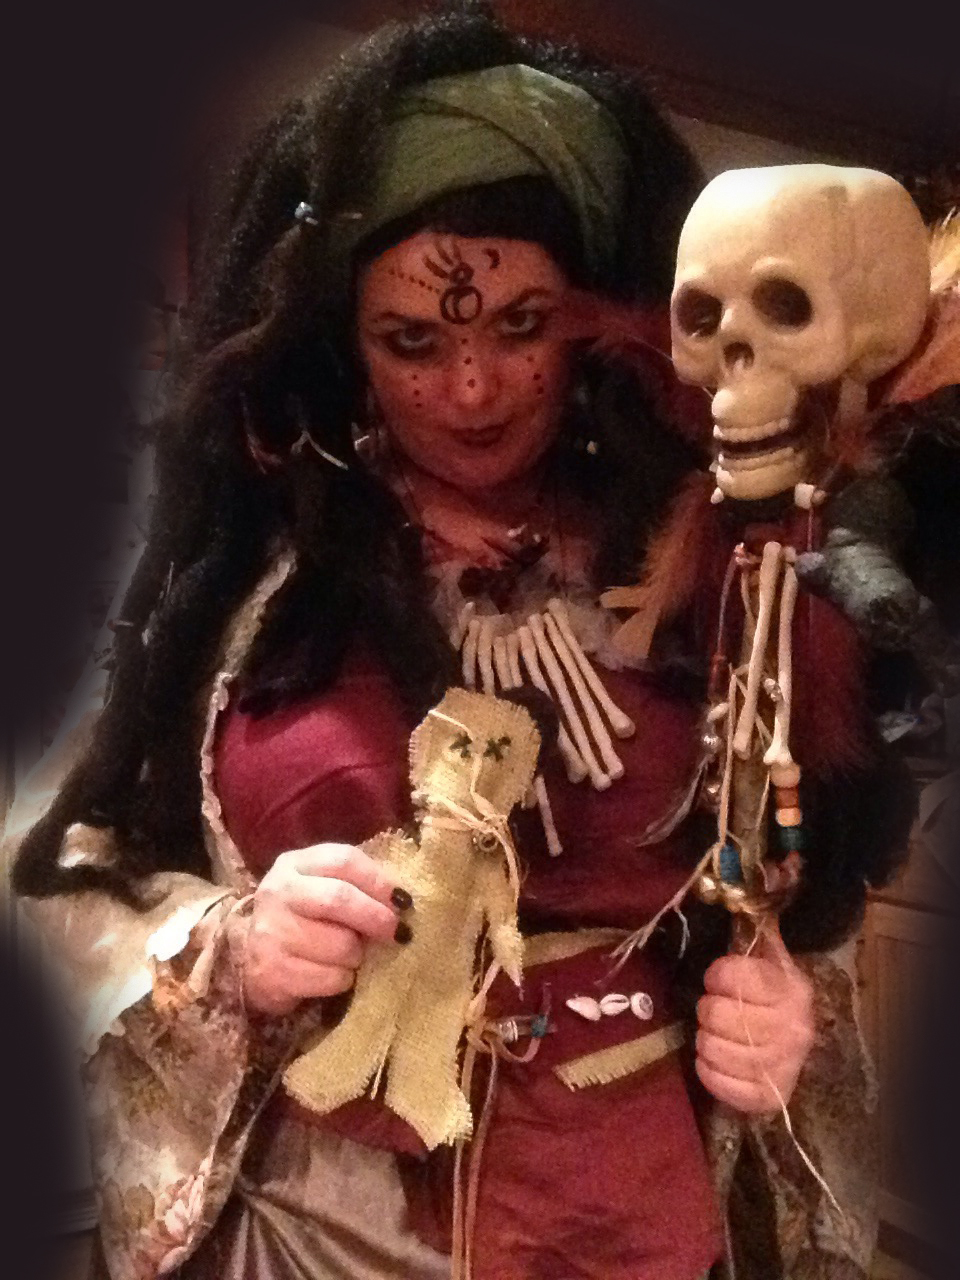 or you may end up on my hip  sc 1 st  Jaime Haney & Voodoo Queen and her Spirit Stick - Jaime Haney Fine Art